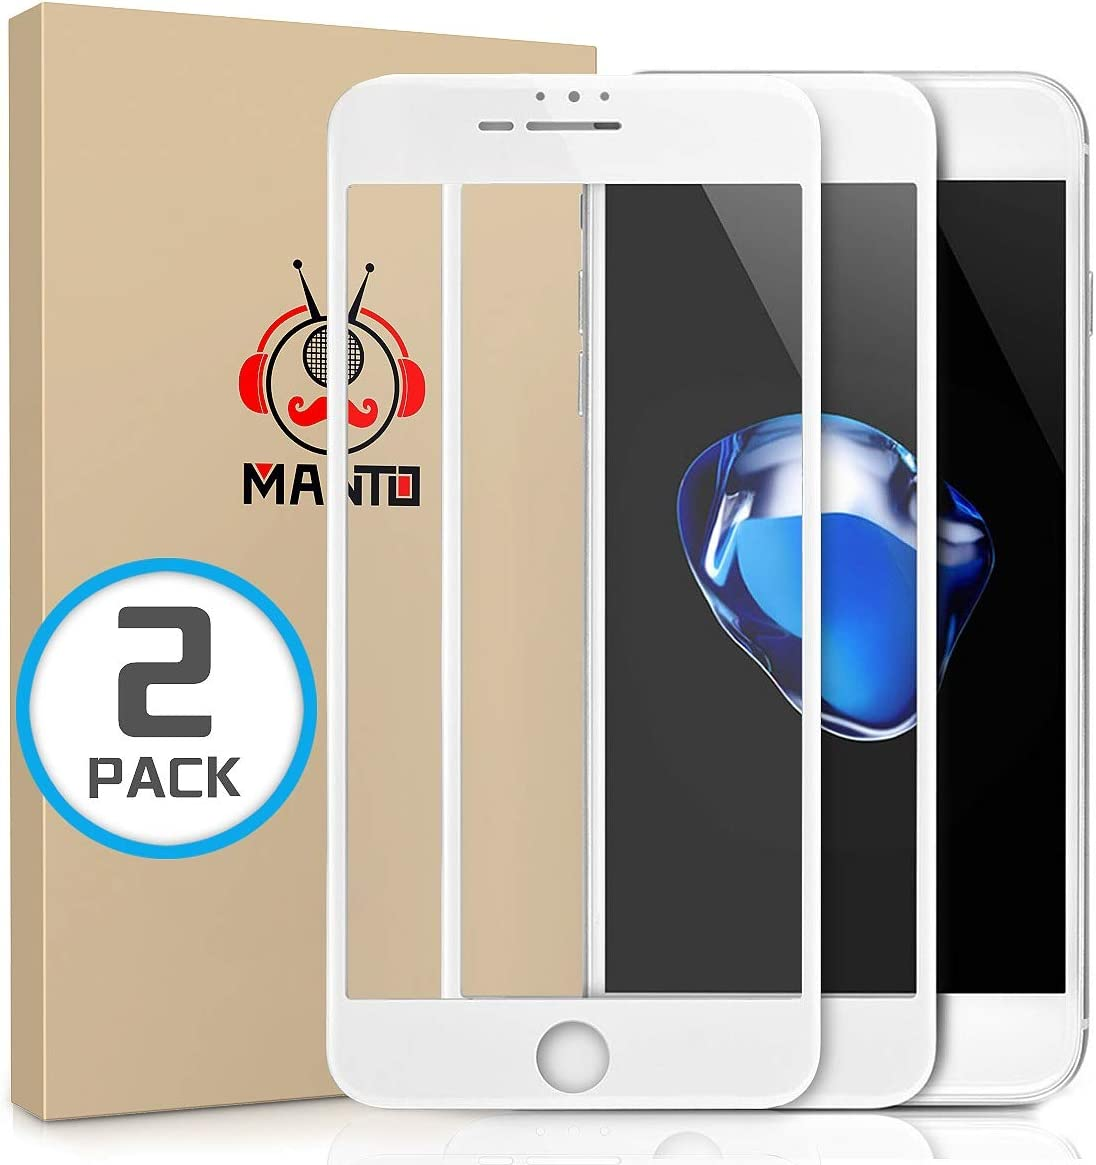 Amazon Com Manto Screen Protector For Iphone 8 Plus 7 Plus 6s Plus 6 Plus 5 5 Inch Full Coverage Tempered Glass Film Edge To Edge Protection 2 Pack White